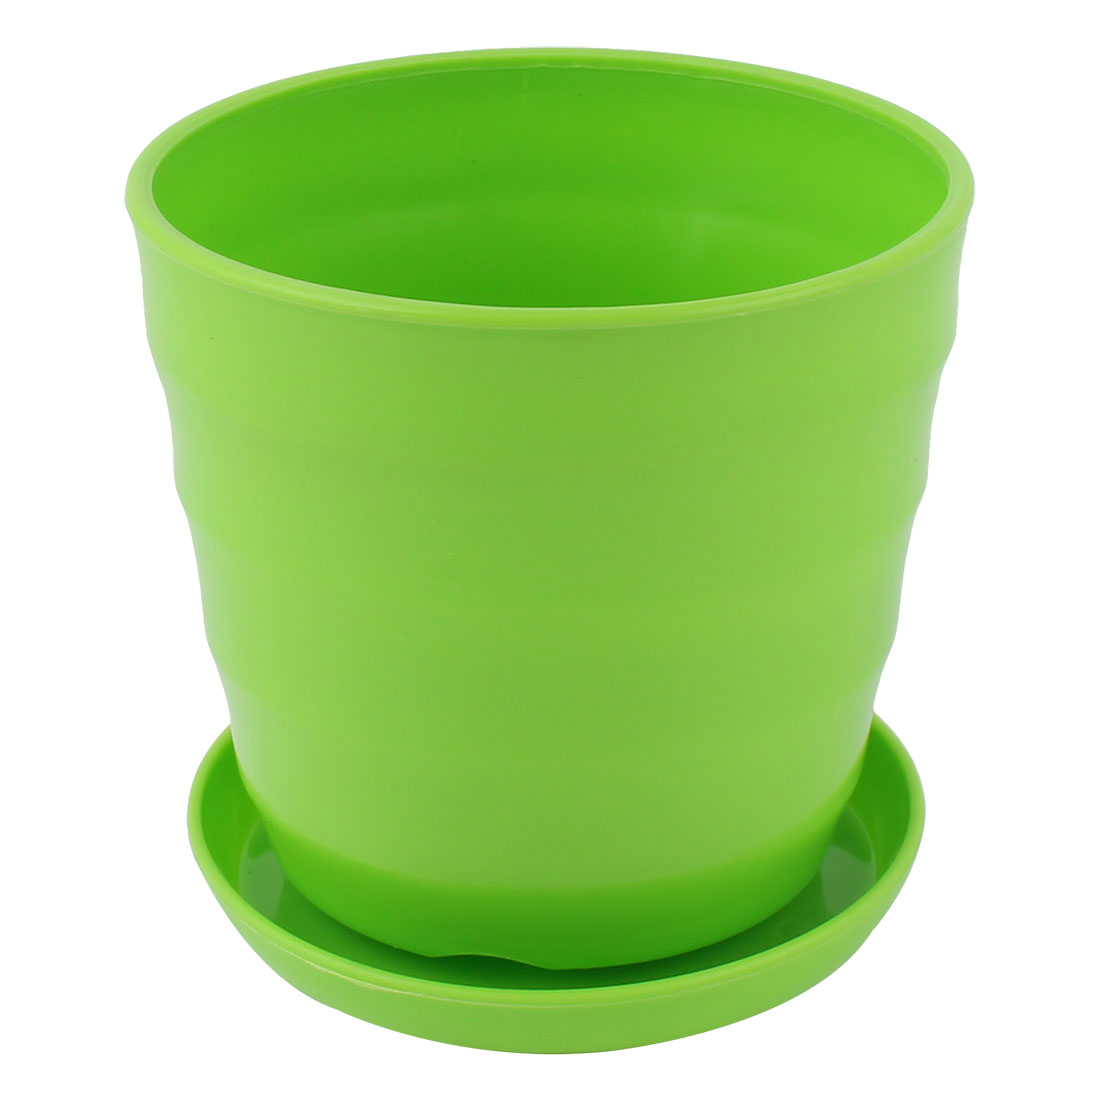 Green Plastic Stripe Pattern Mini Home Garden Office Flower Planter Pot w Tray